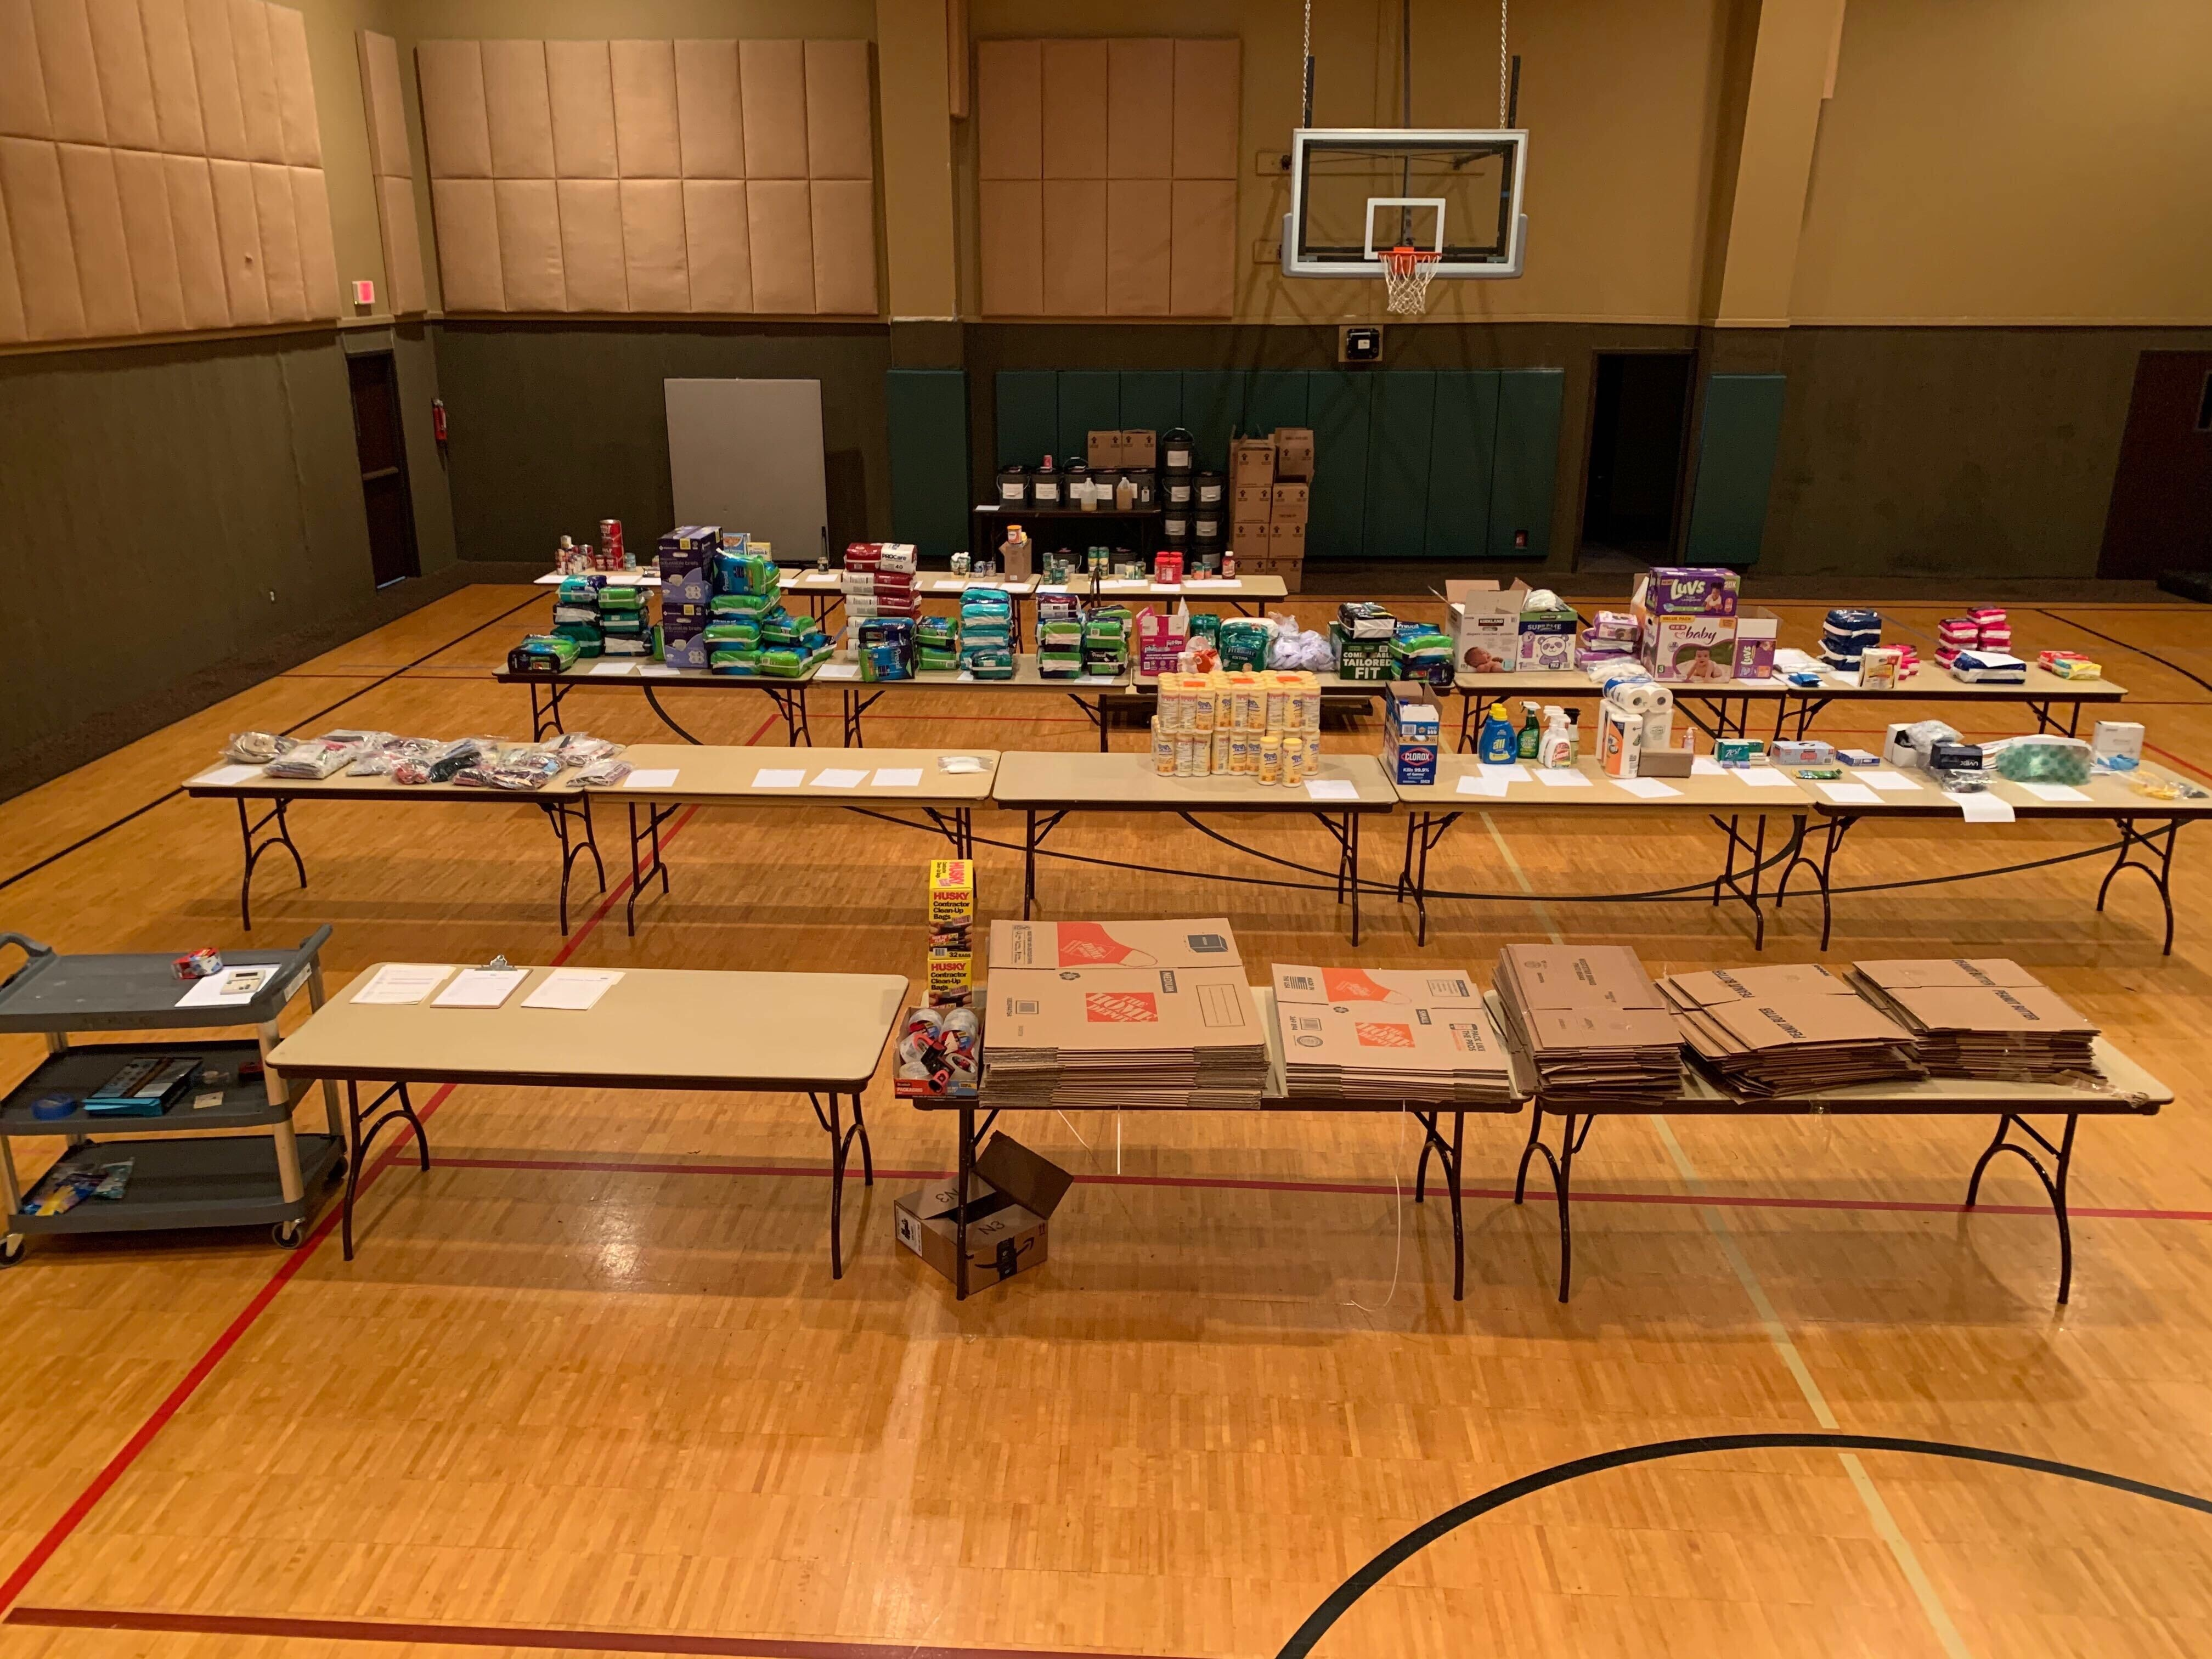 Supplies are neatly arranged in stacks on tables at the warehouse set up at the First Baptist Church in Georgetown ready for pick-up and delivery by volunteers.